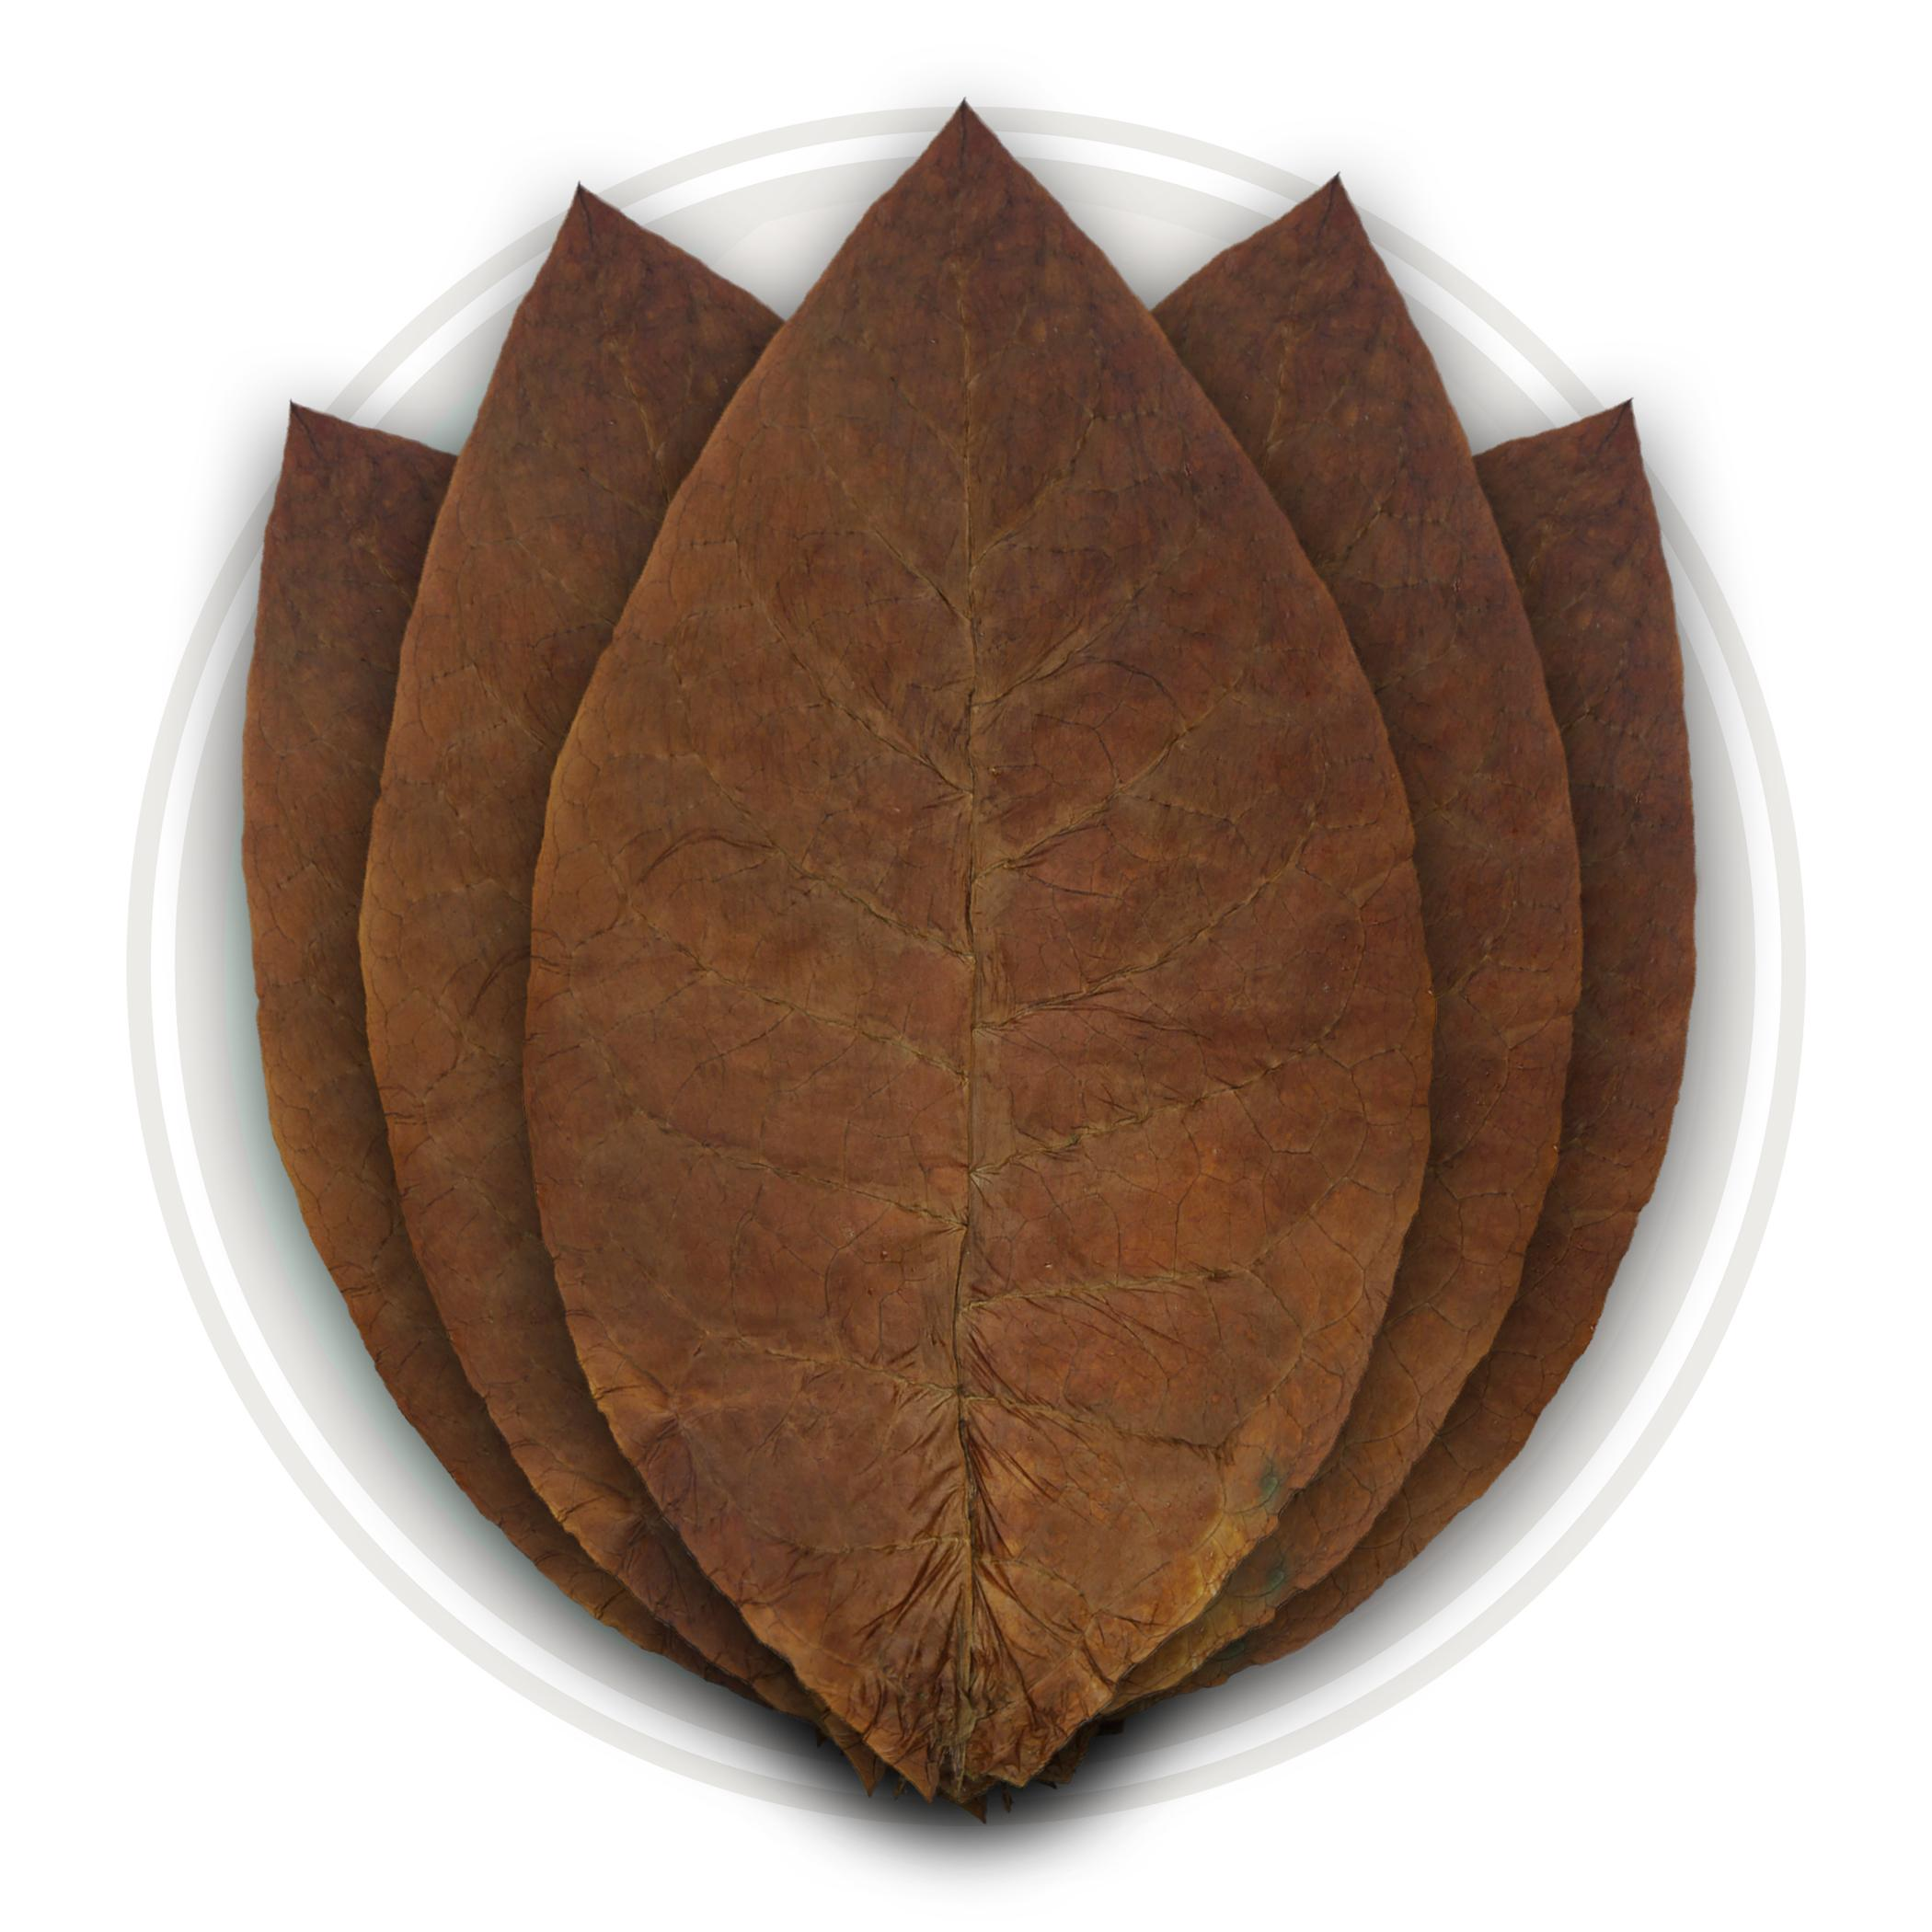 Ecuadorian Habano Viso Cigar Wrapper Tobacco Leaf Only